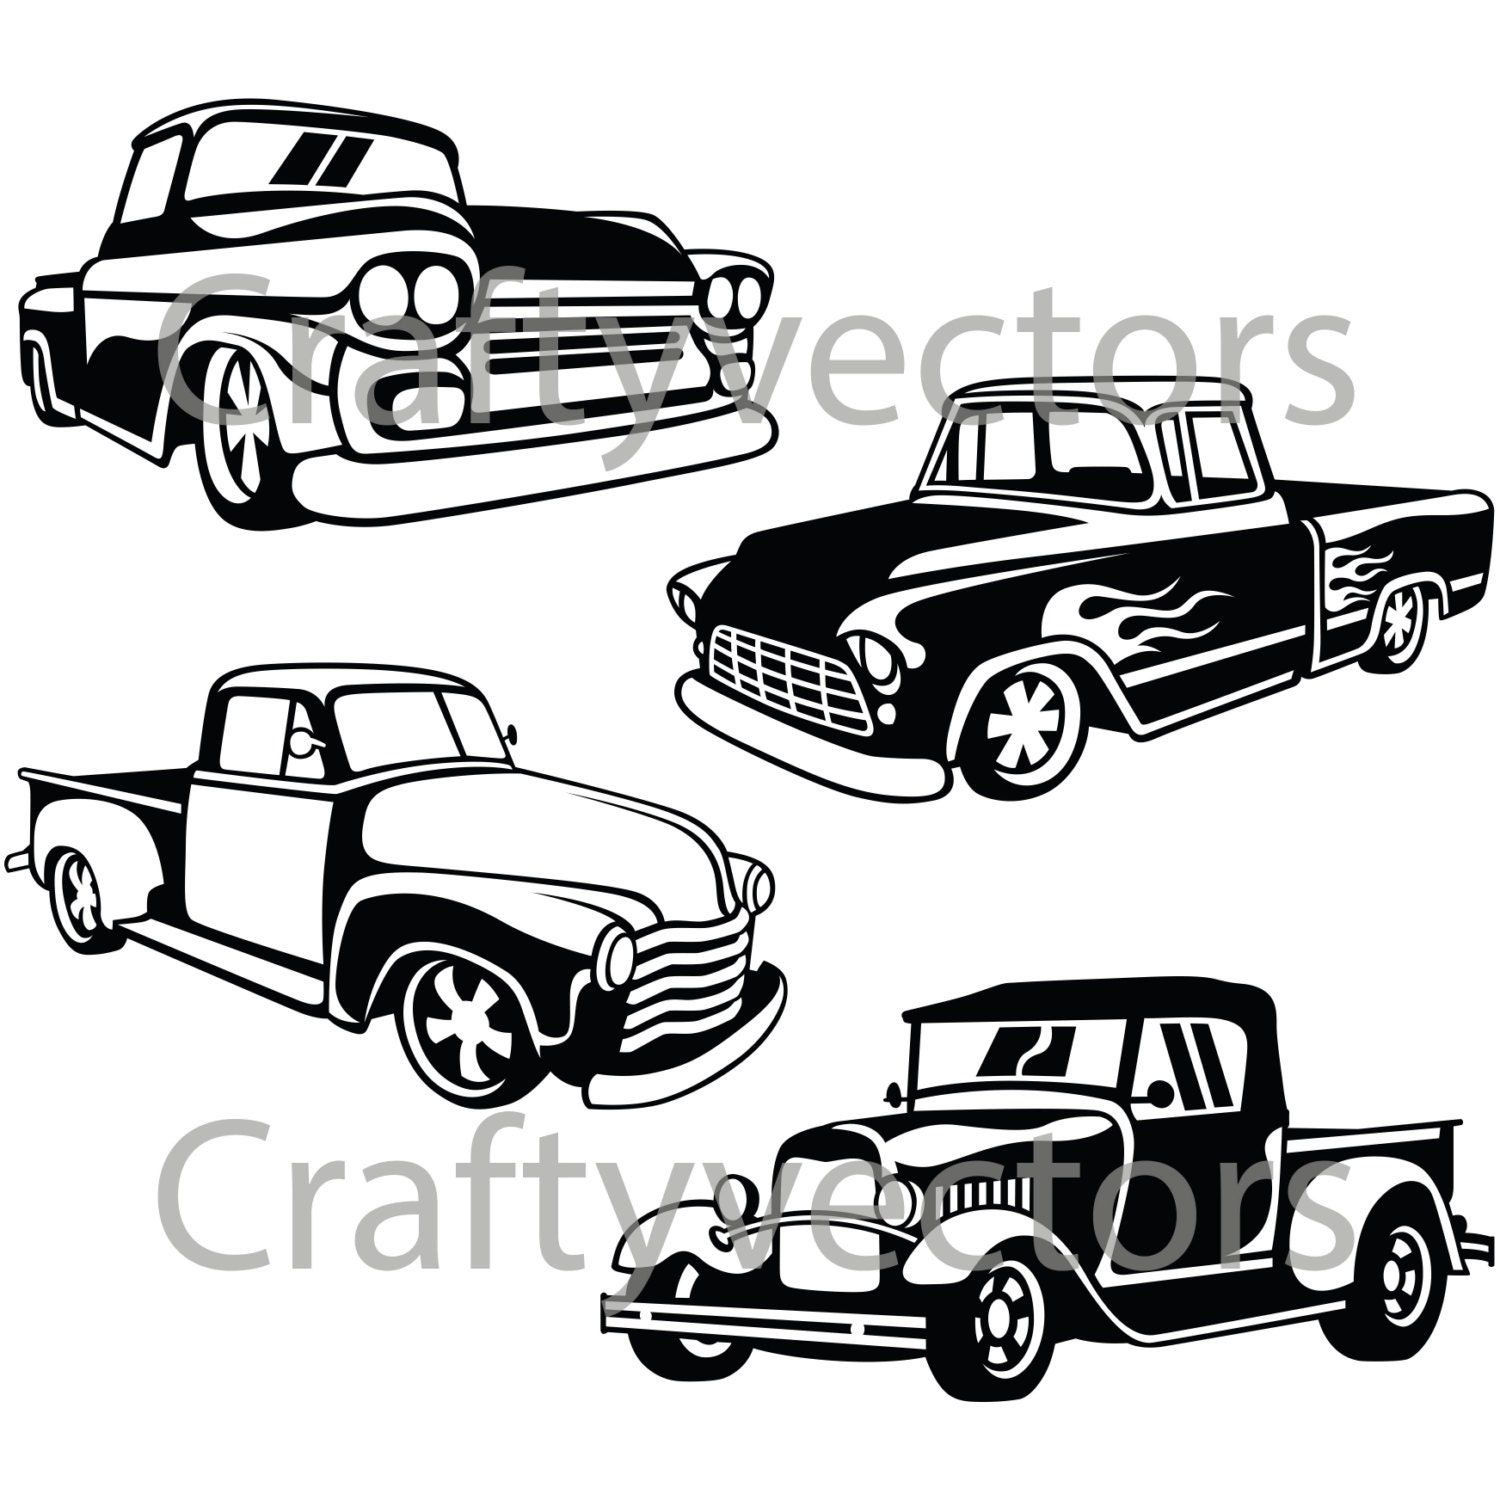 hot rod chevy trucks box wiring diagram 1982 Chevy Silverado Lifted hot rod trucks svg vector files etsy 1972 chevy truck hot rod